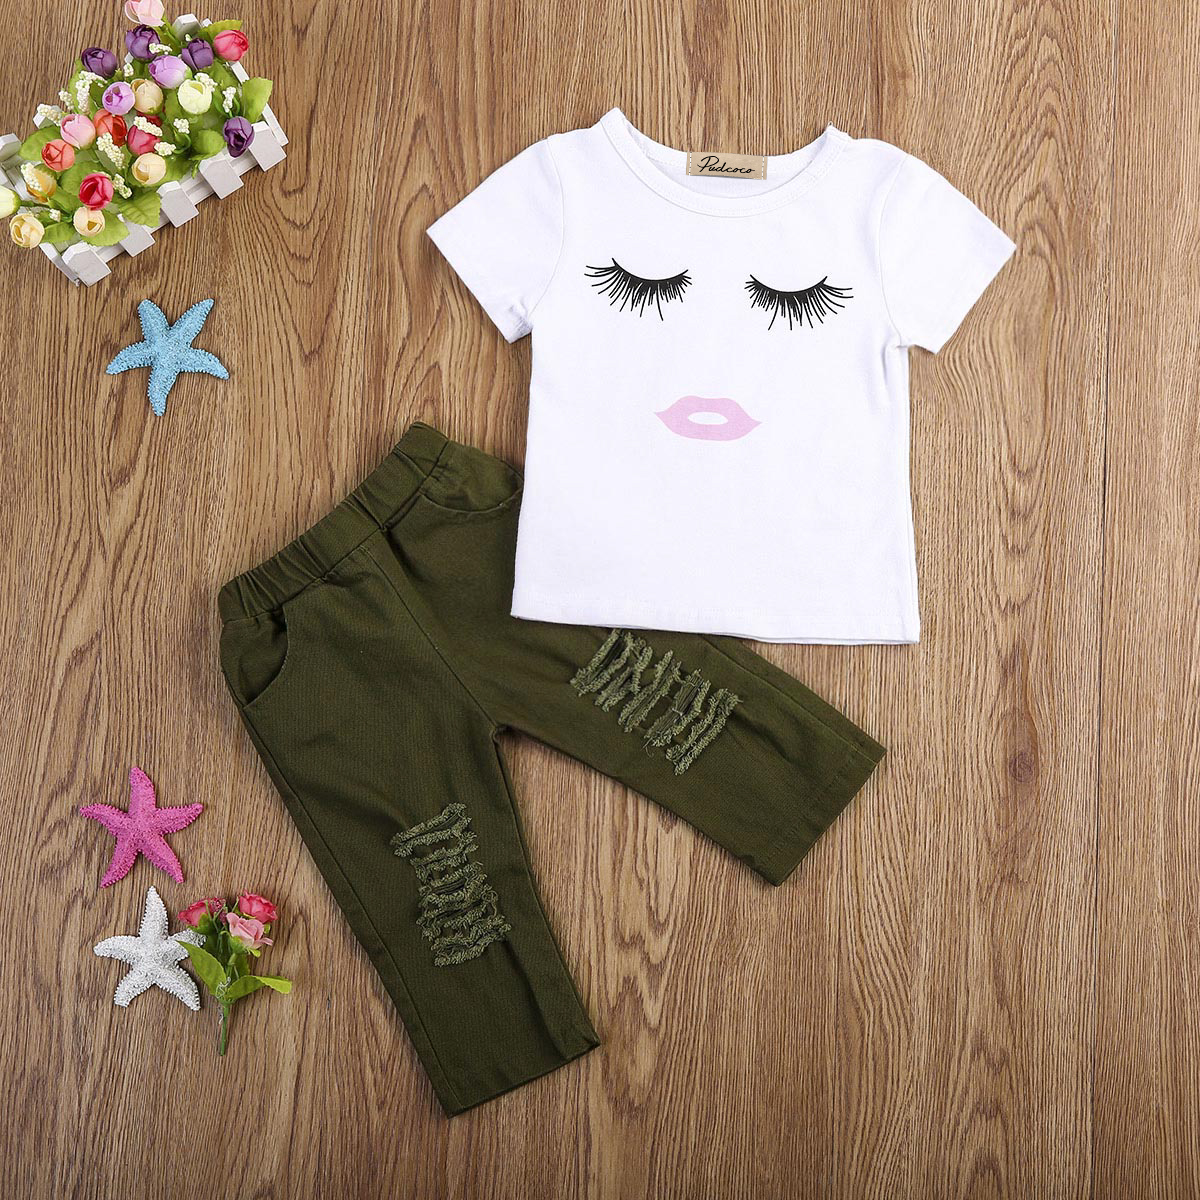 b34b00191df76 2Pcs Cute Newborn Toddler Baby Girls Eyelashes Tops T shirt Army Green Pants  Leggings Outfits Clothing Sets 1 4Y-in Clothing Sets from Mother   Kids on  ...